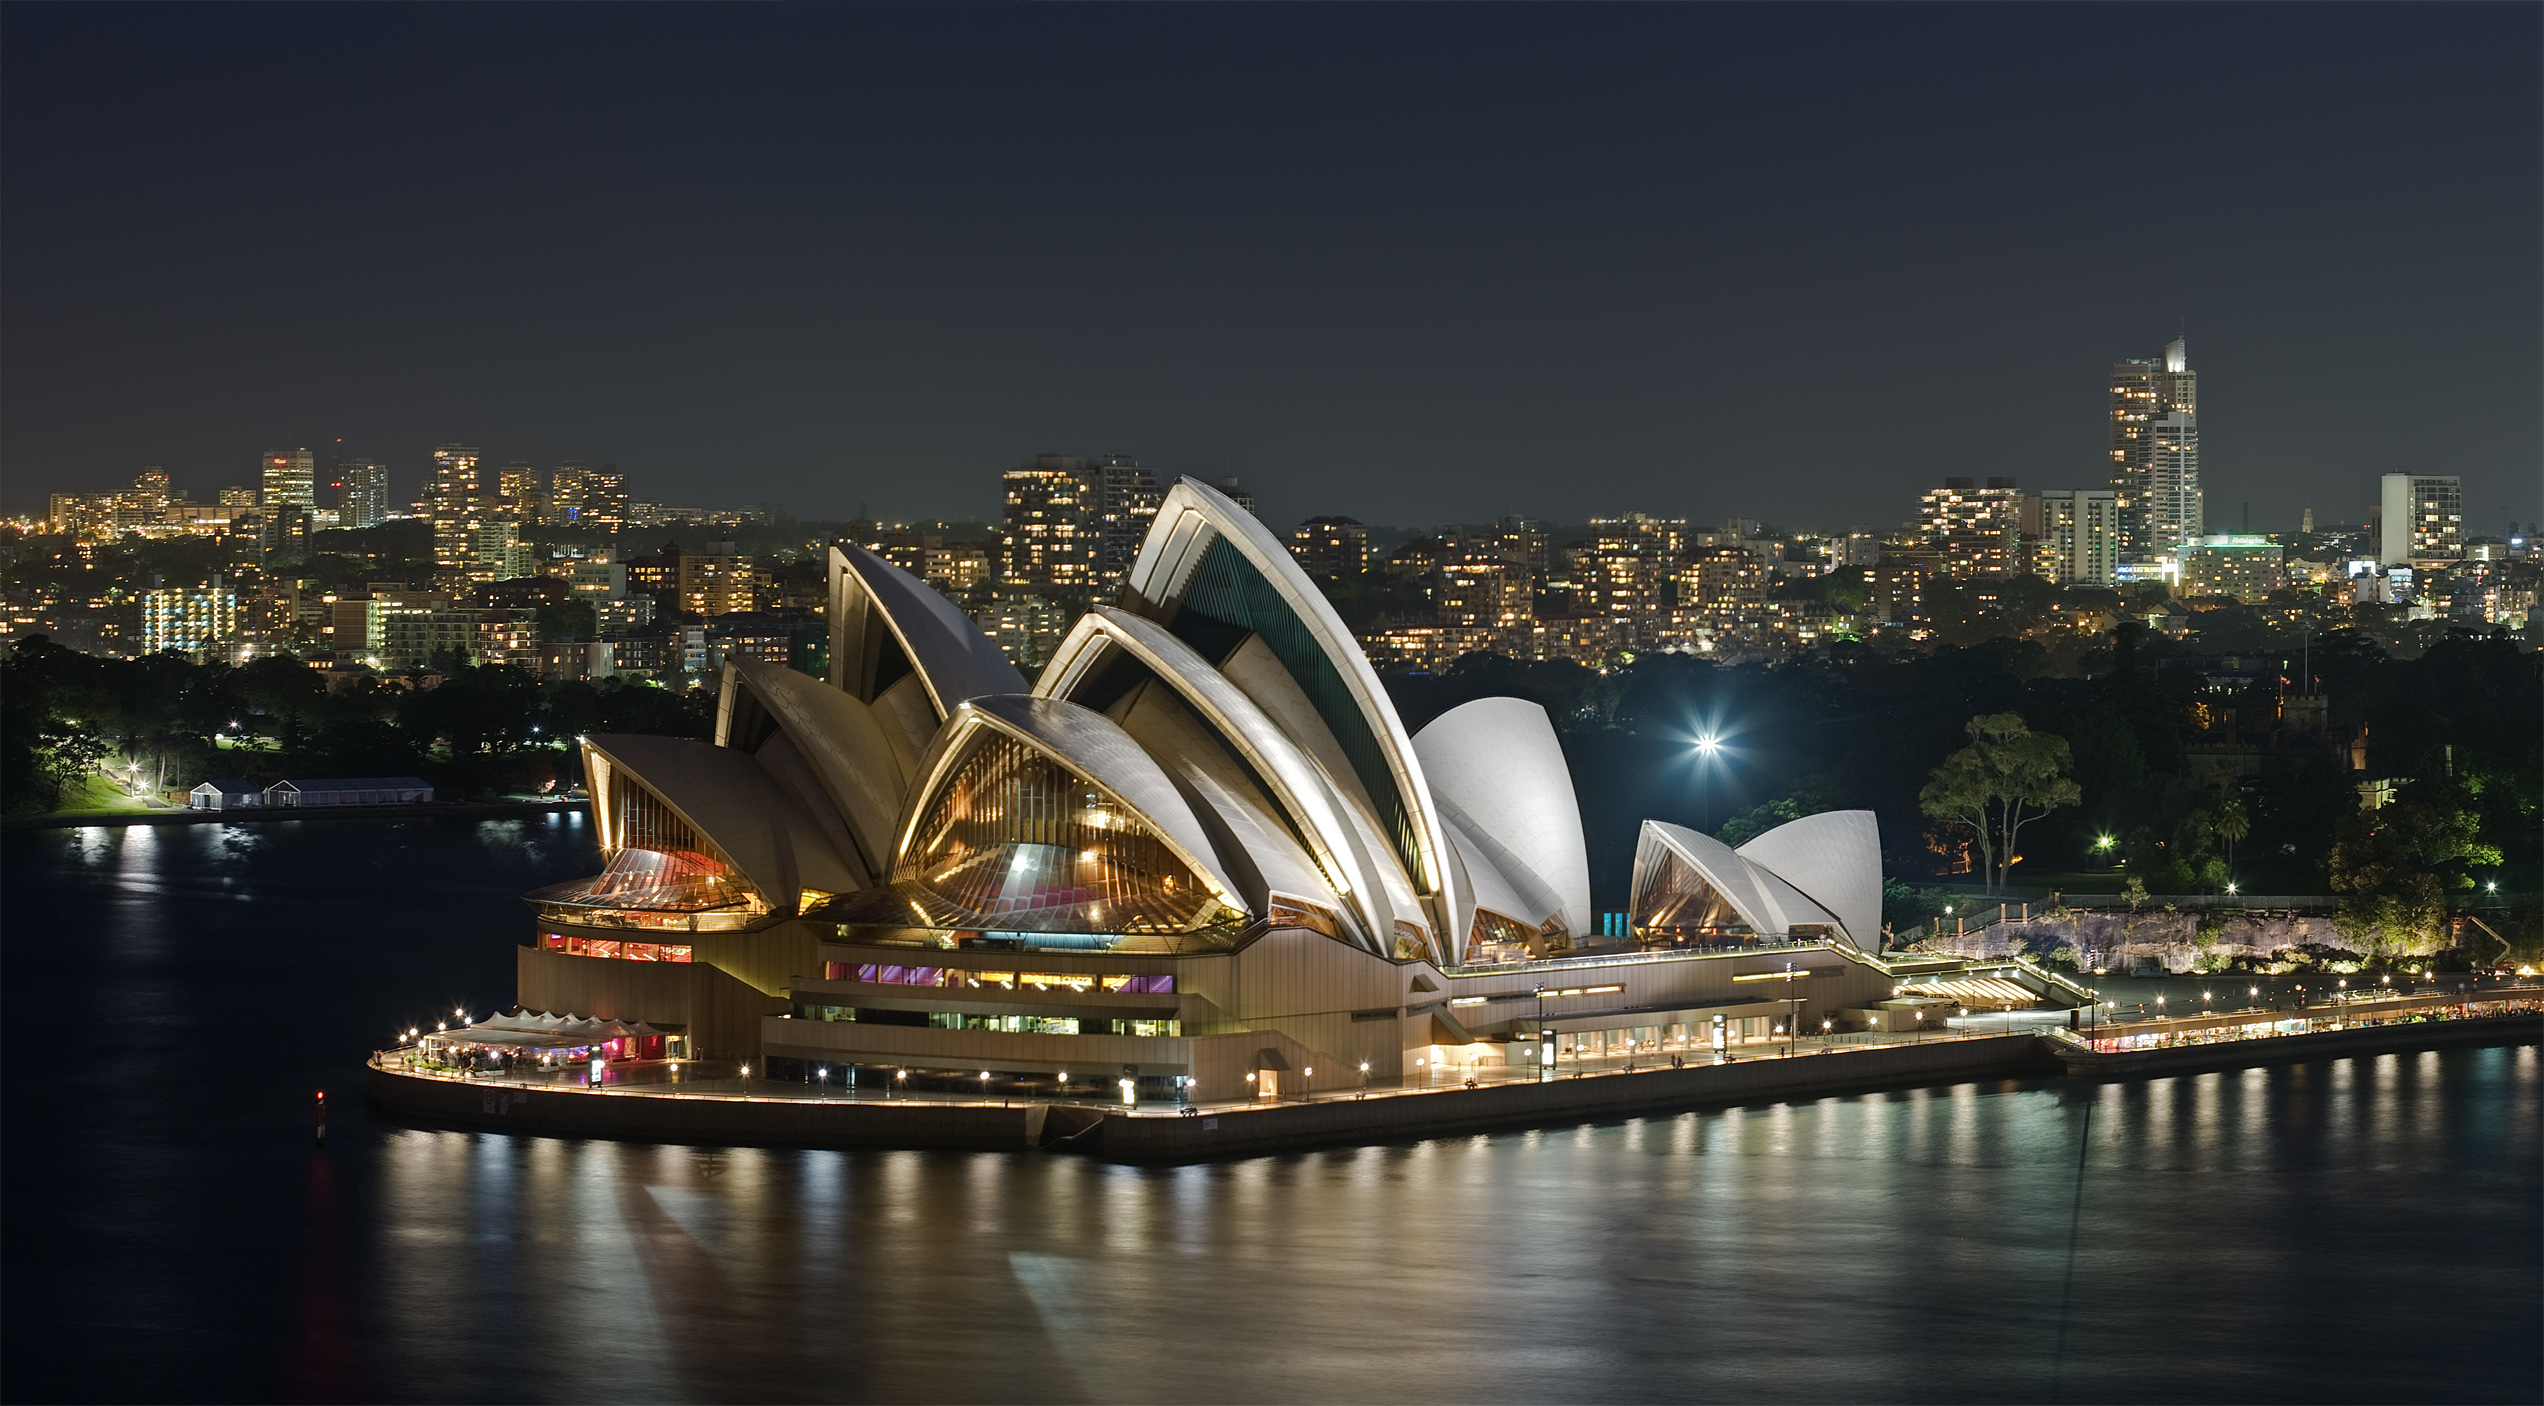 Sydney Opera House at night By Diliff (Own work) [CC-BY-SA-3.0 (http://creativecommons.org/licenses/by-sa/3.0) or GFDL (http://www.gnu.org/copyleft/fdl.html)], via Wikimedia Commons